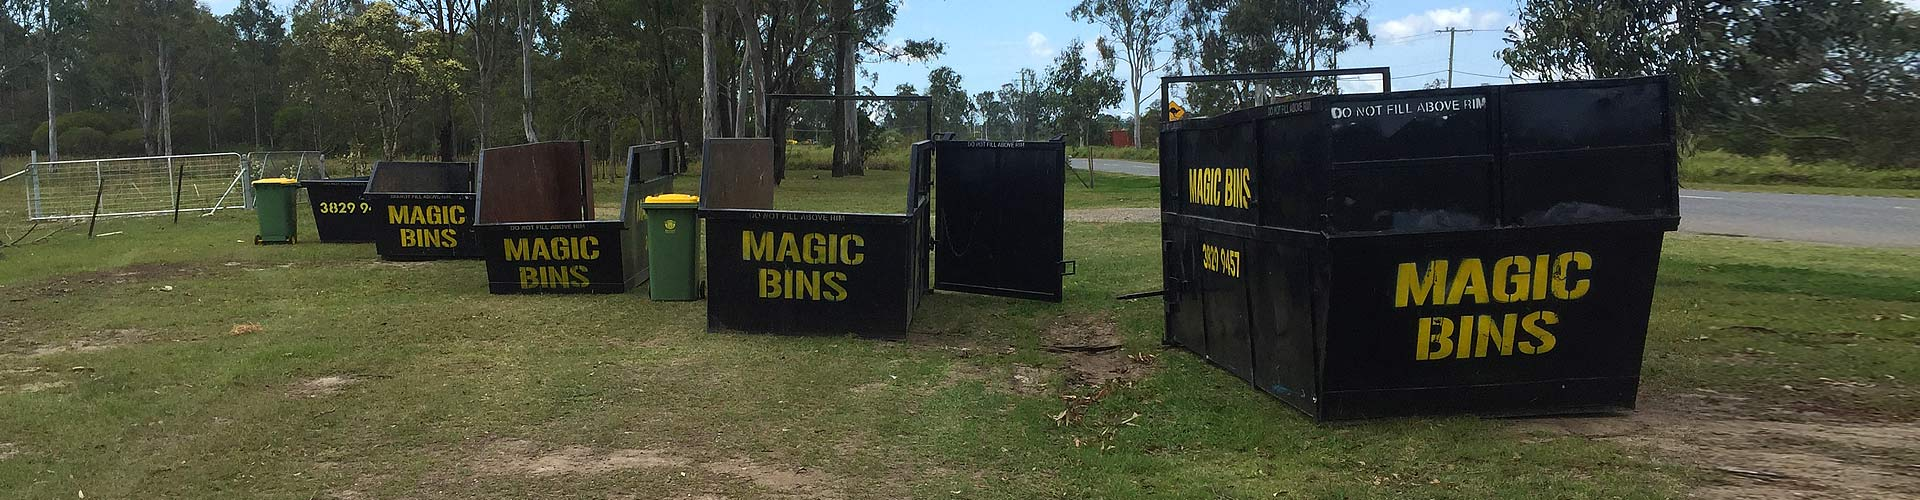 large magic skip bins on grass